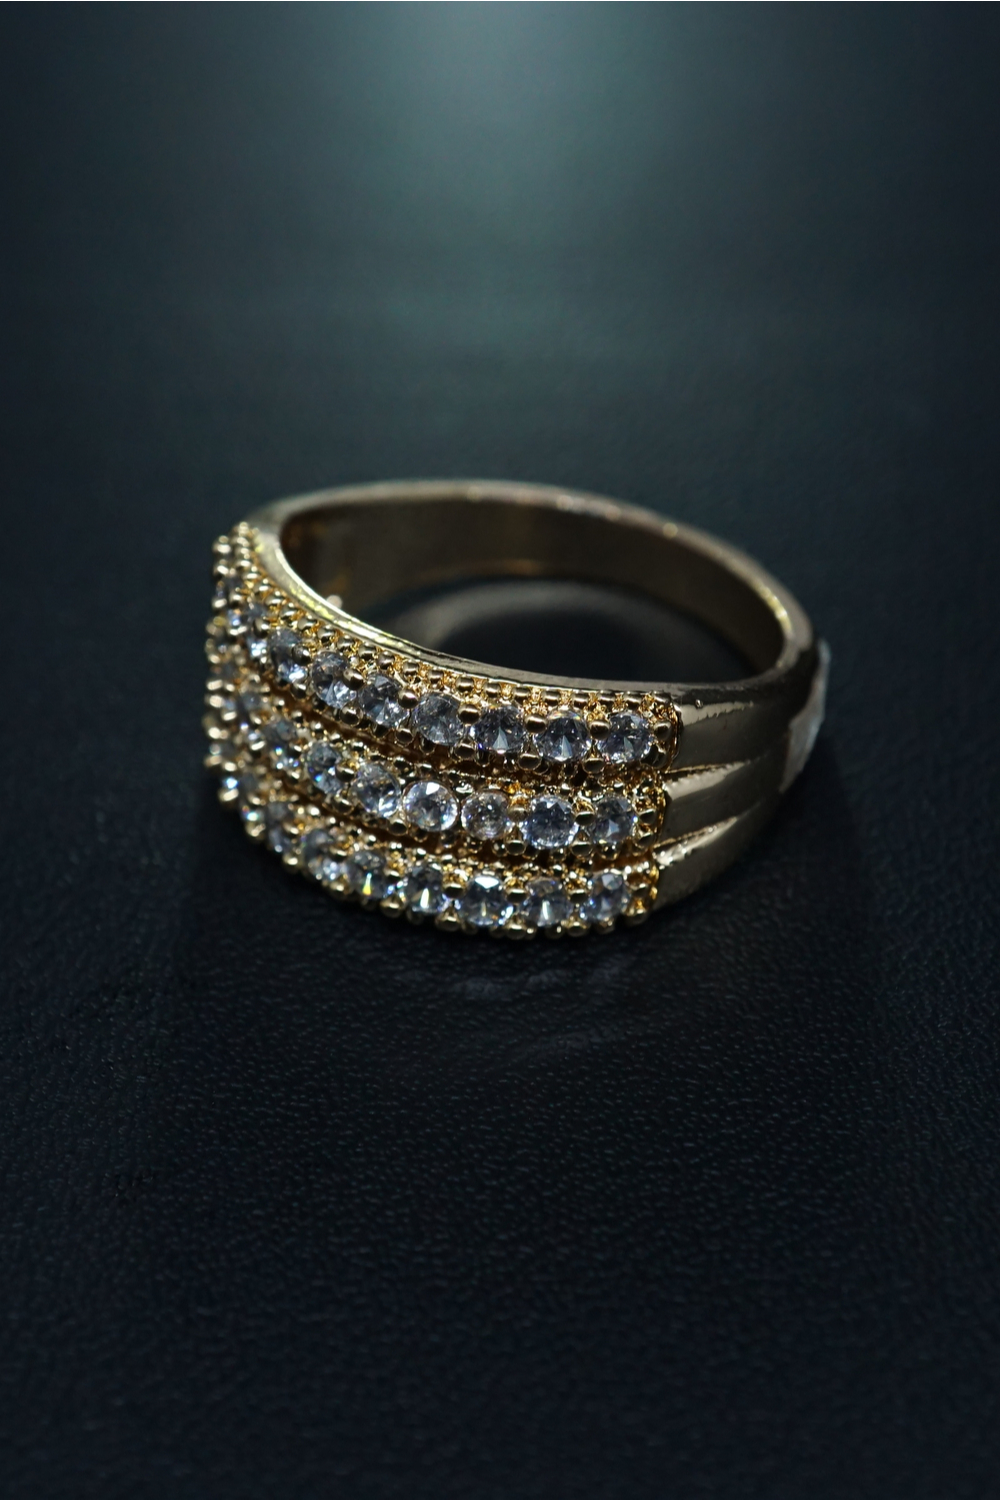 How to Maintain Black Gold Jewelry